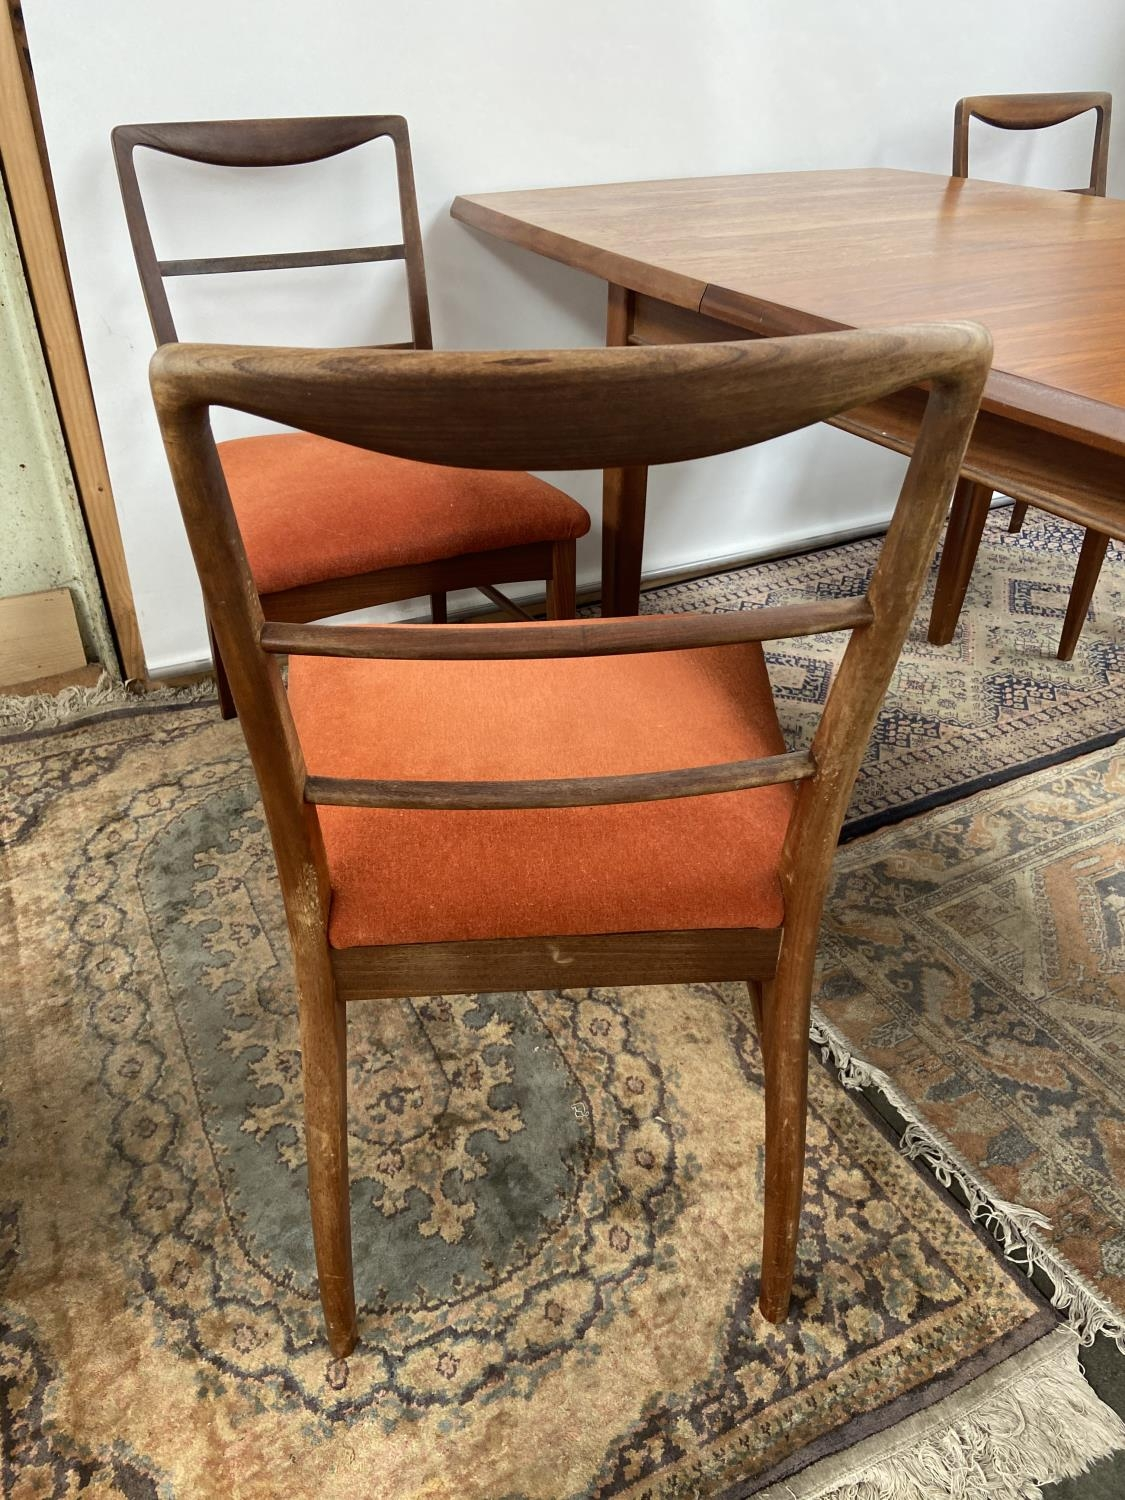 A Retro mid century teak dining table and four matching chairs produced by Vanson. [Table extended - Image 5 of 13